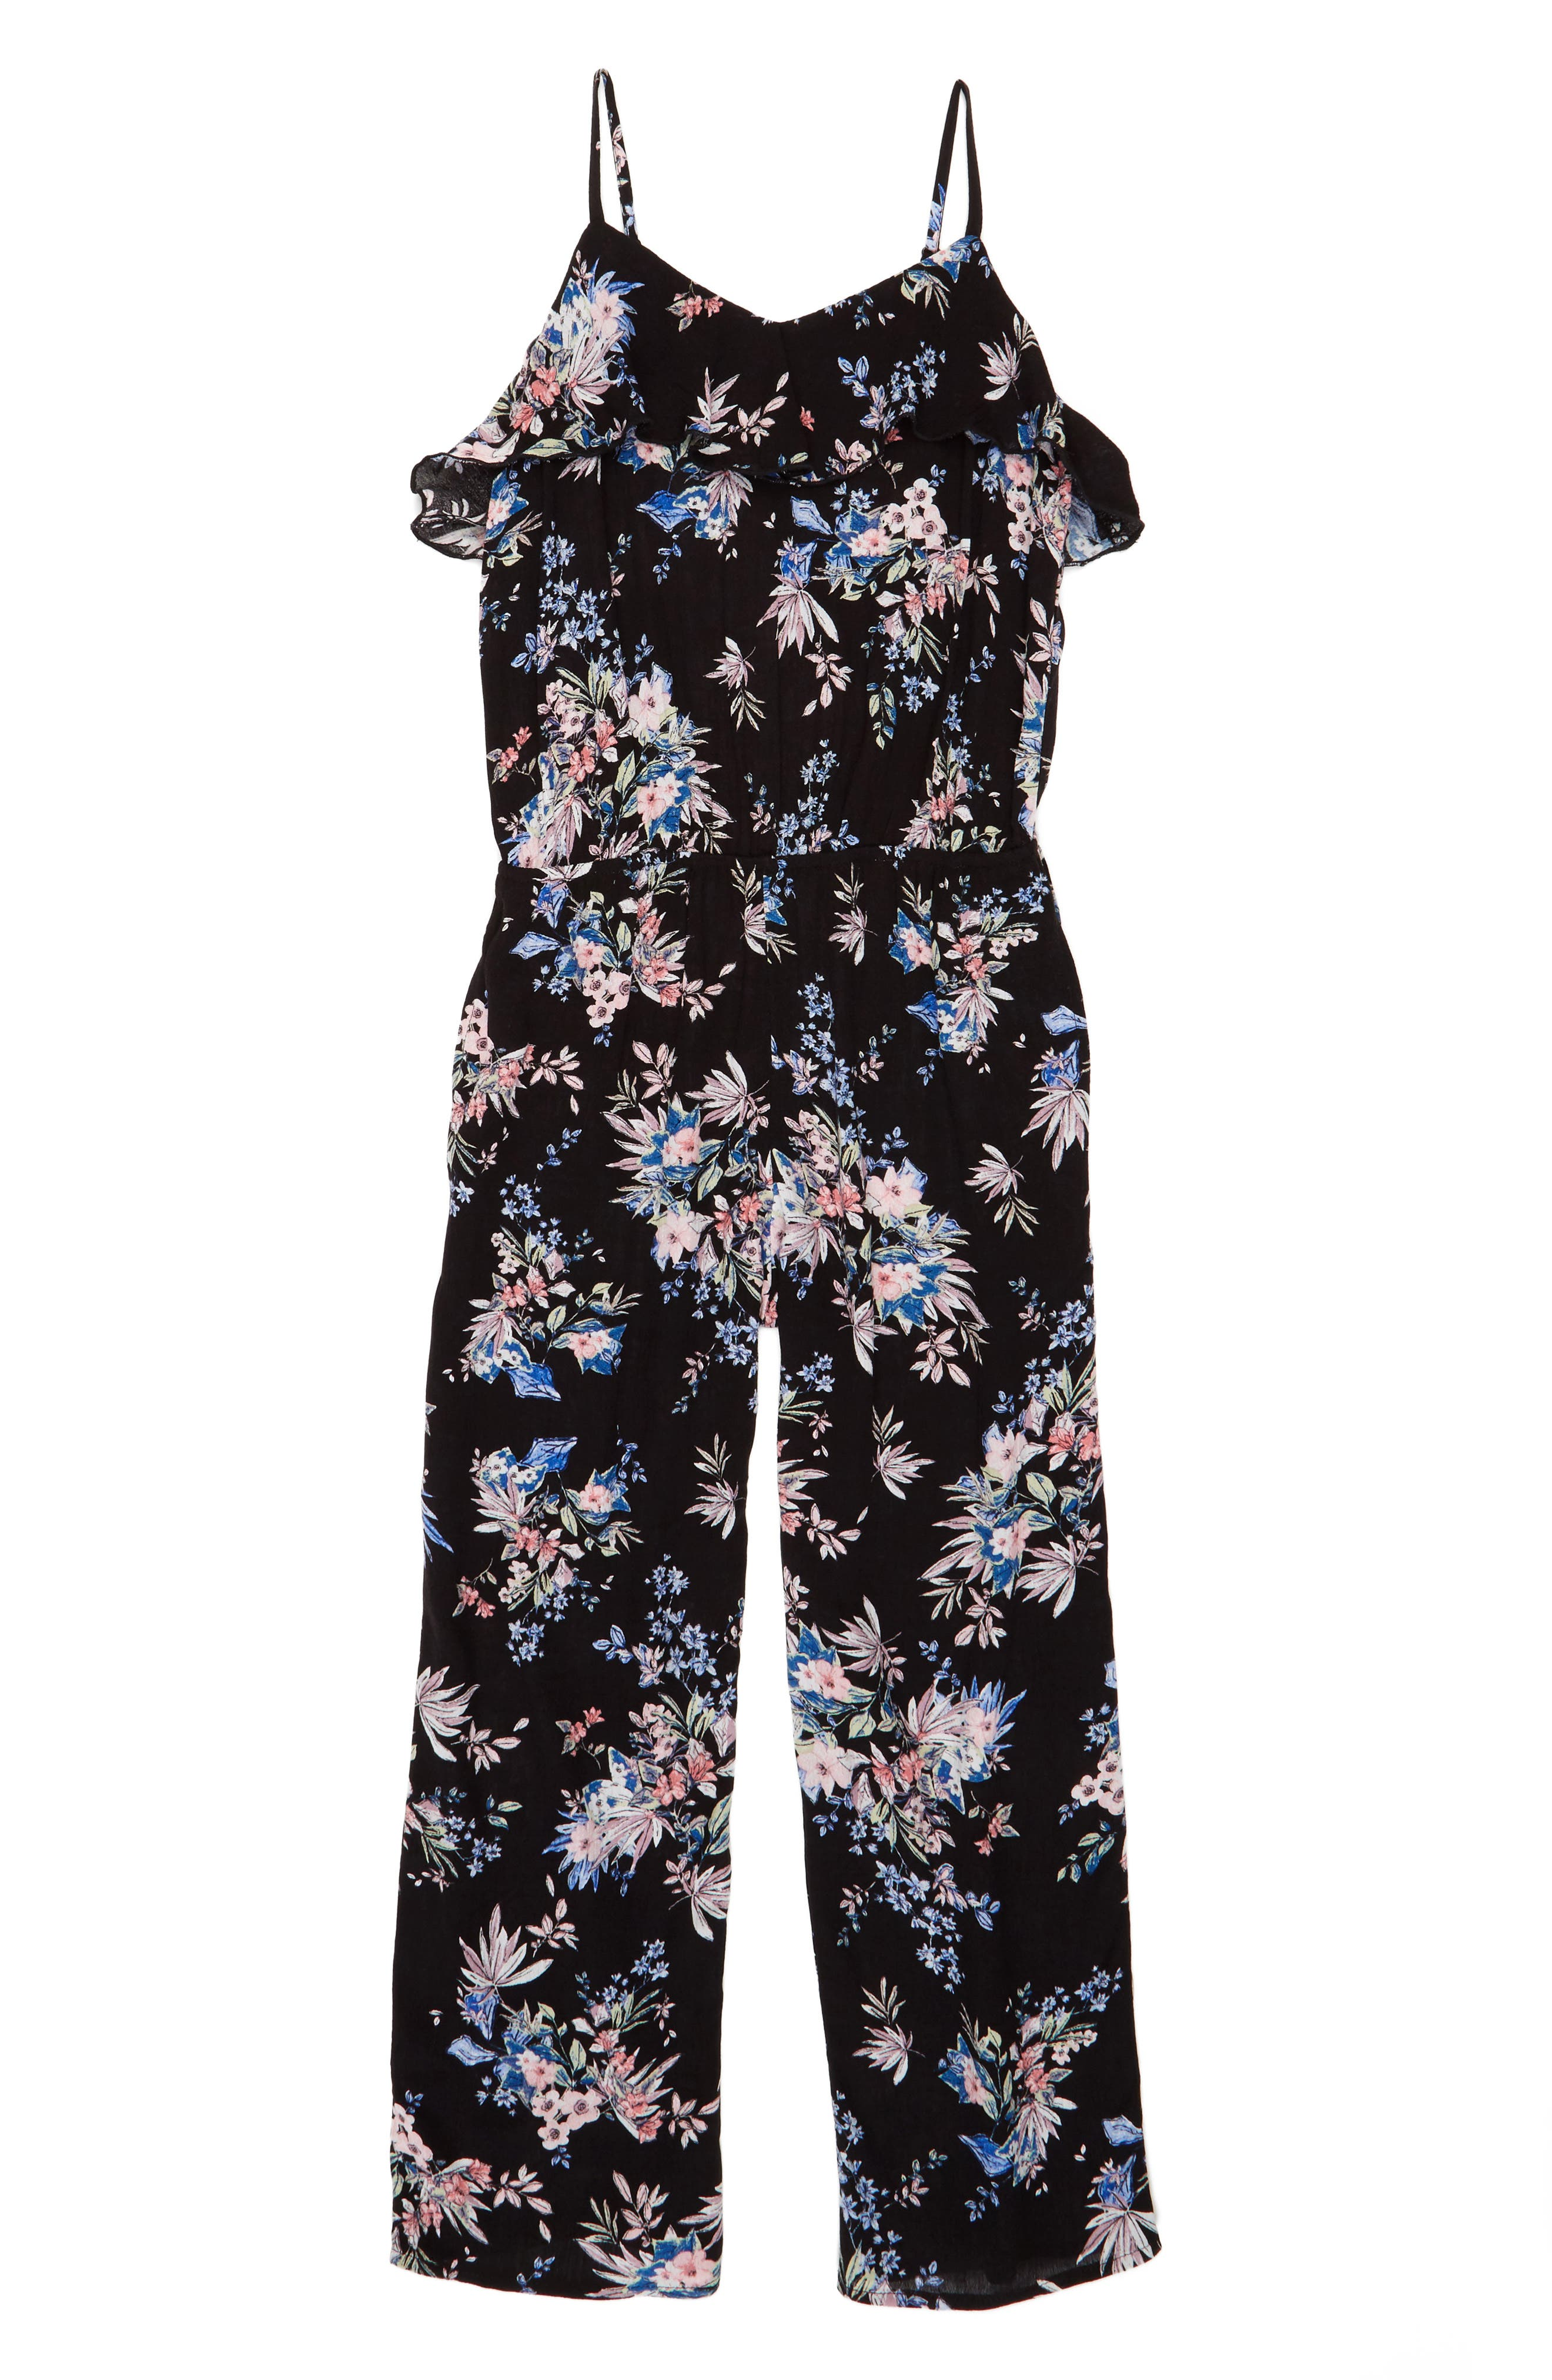 Main Image - Mia Chica Floral Print Jumpsuit (Big Girls)